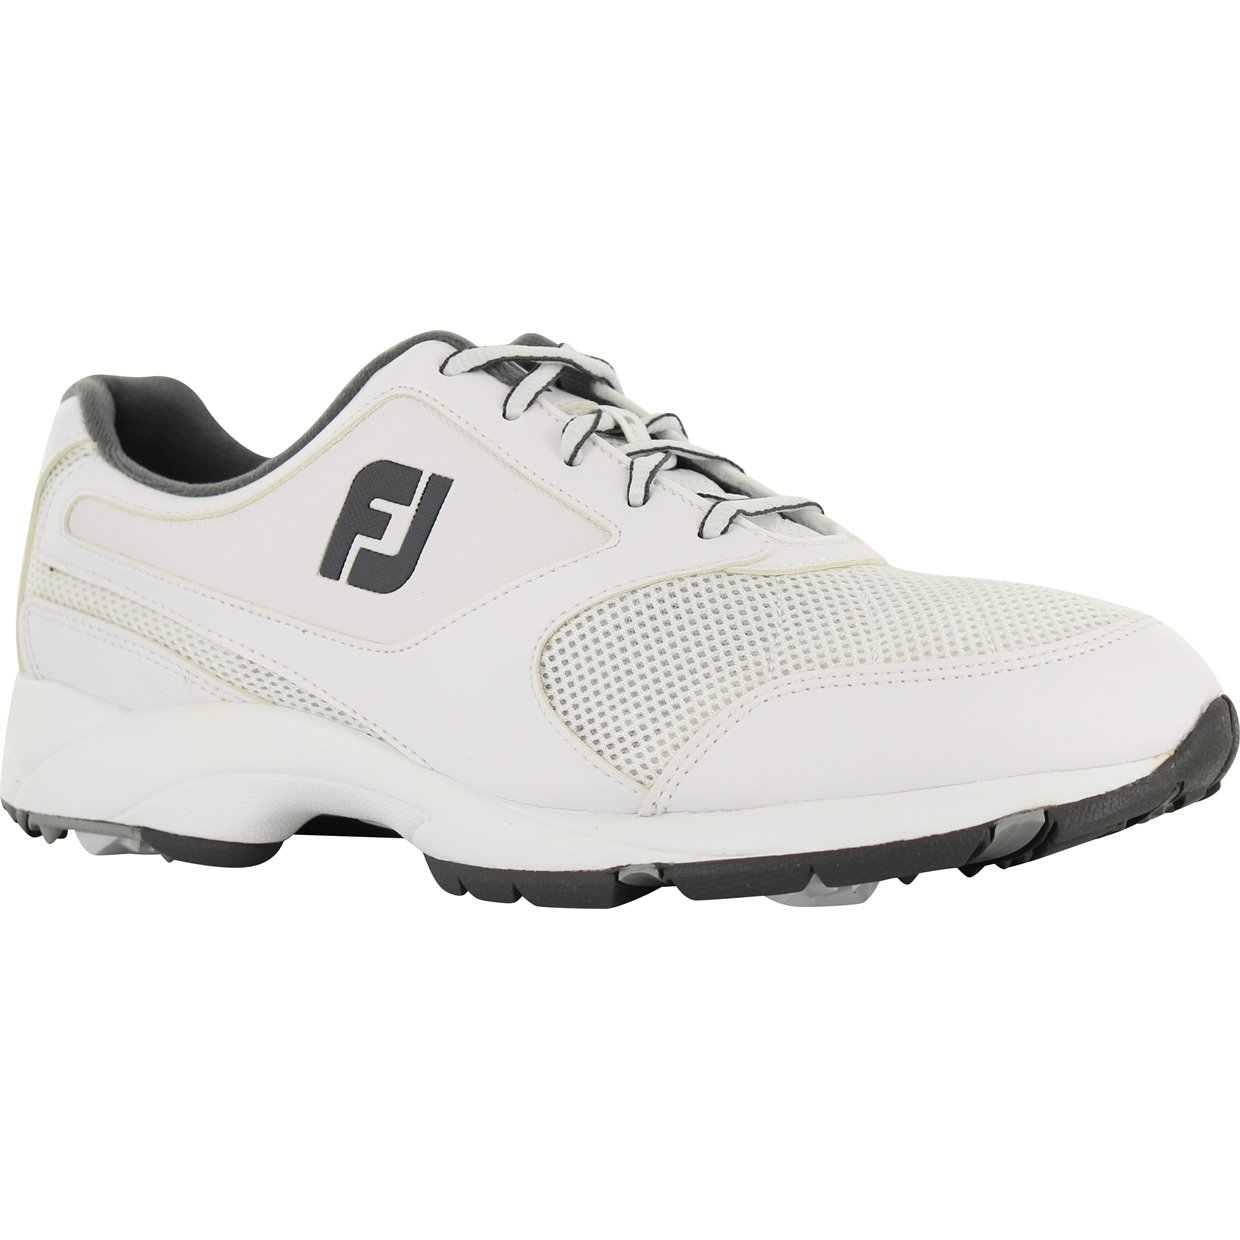 Footjoy Fj Golf Athletics Previous Season Shoe Style Spikeless Shoes At Globalgolf Com